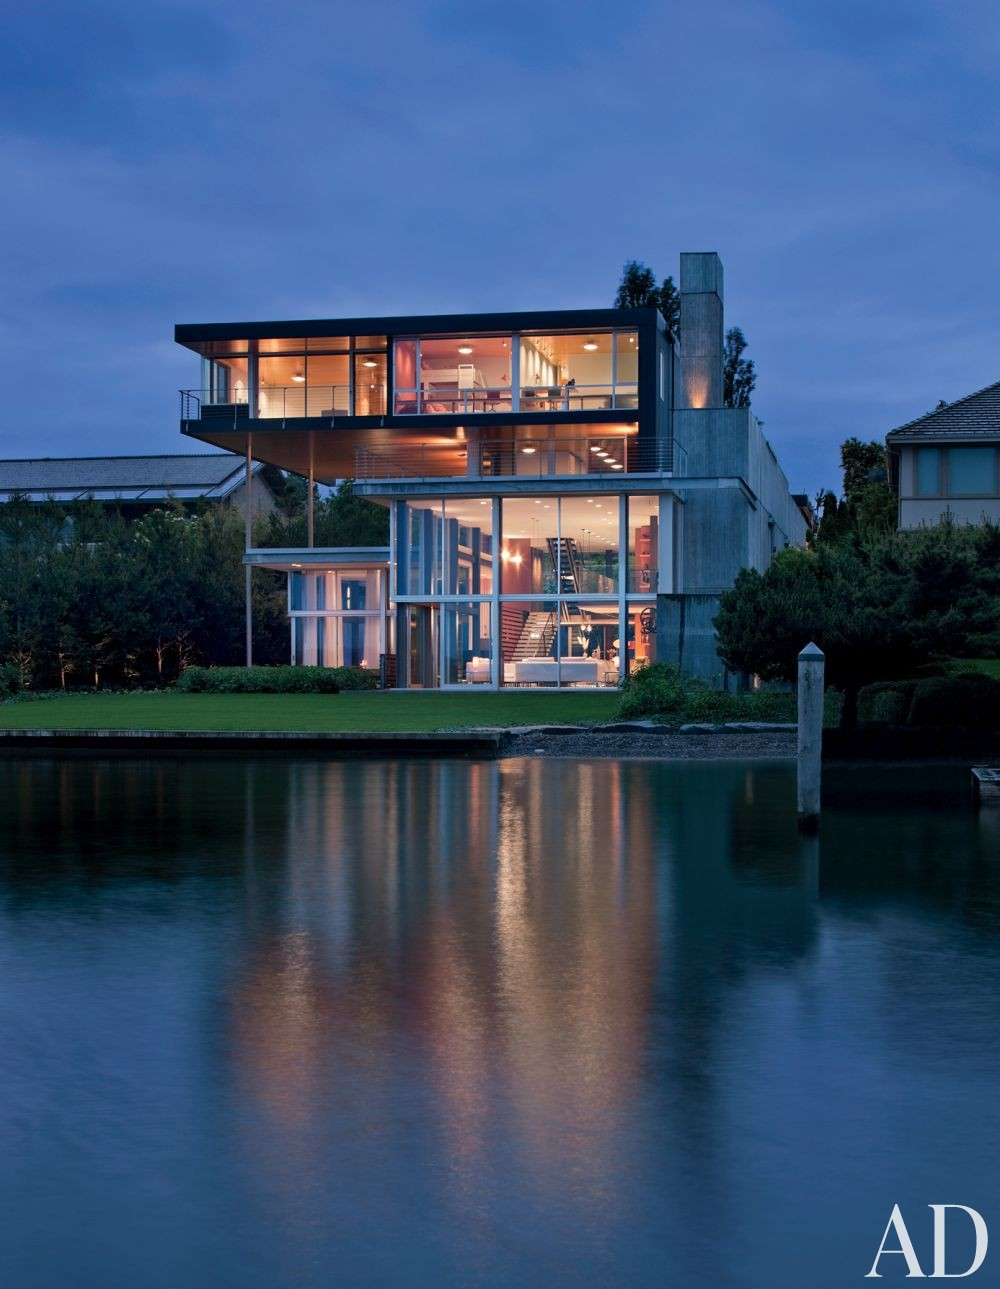 Modern Exterior by Stretch Design and E. Cobb Architects in Mercer Island, Washington